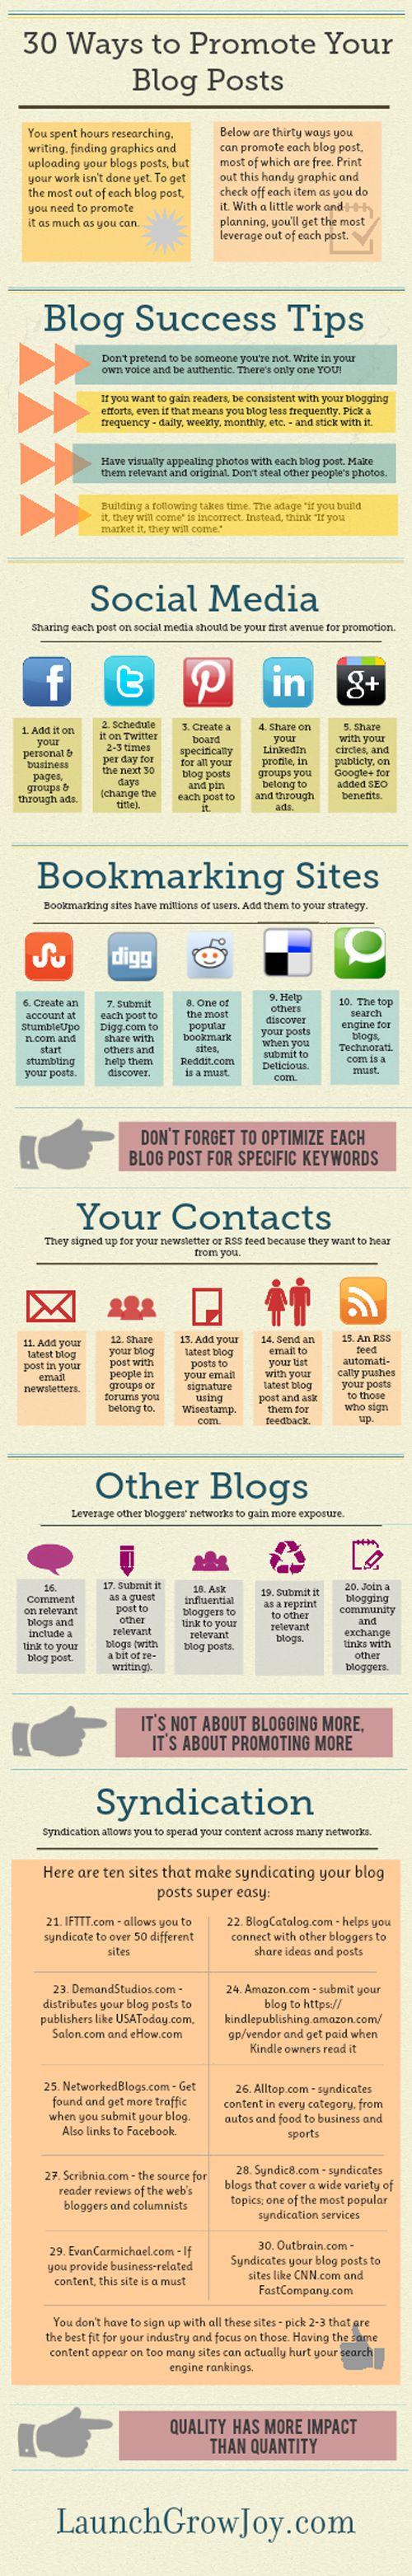 Blog Traffic Infographic - 30 Blog Promotion Tips for Authors